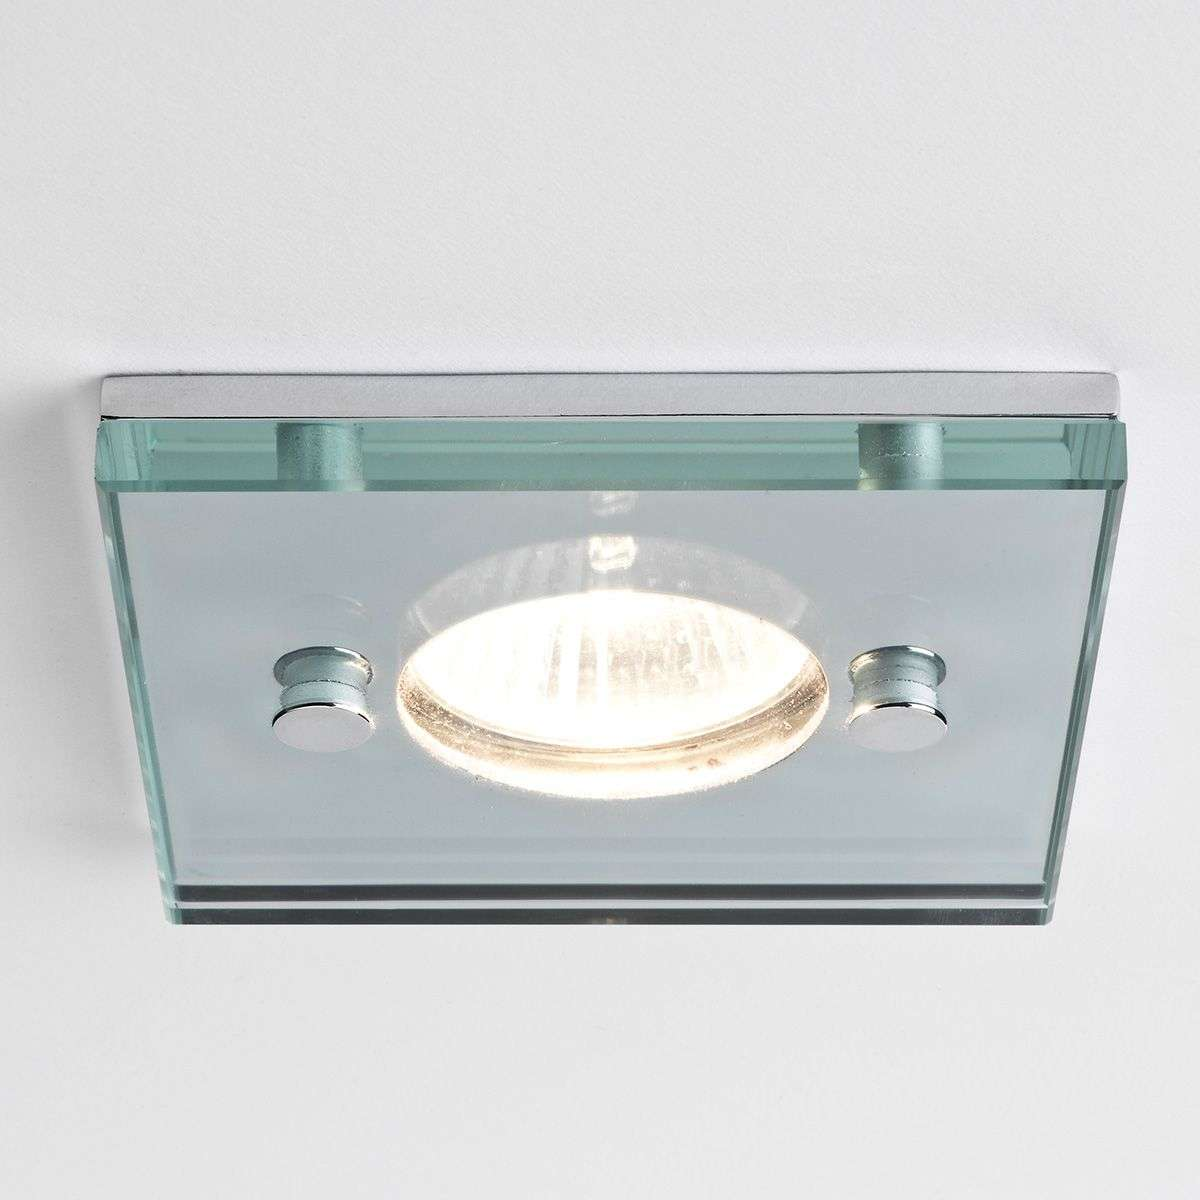 Ice Square HV Built-In Ceiling Light Attractive-1020111-32